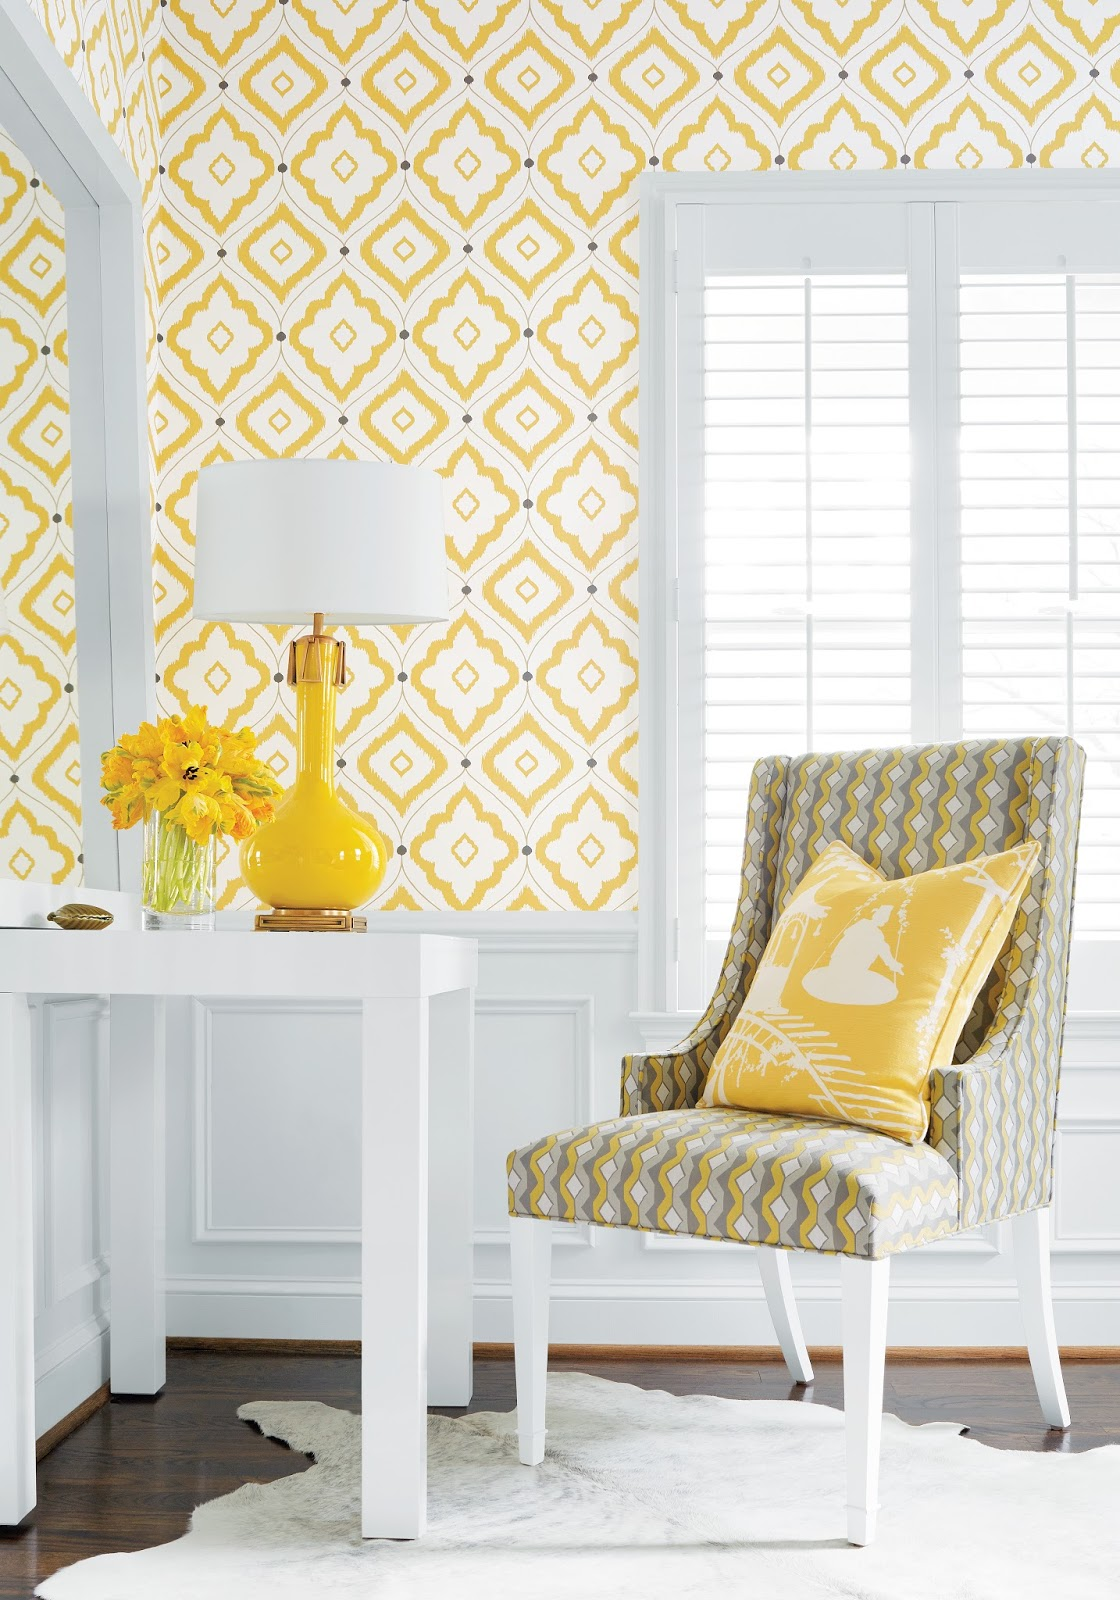 Coordinating Wallpaper and Fabric 1120x1600